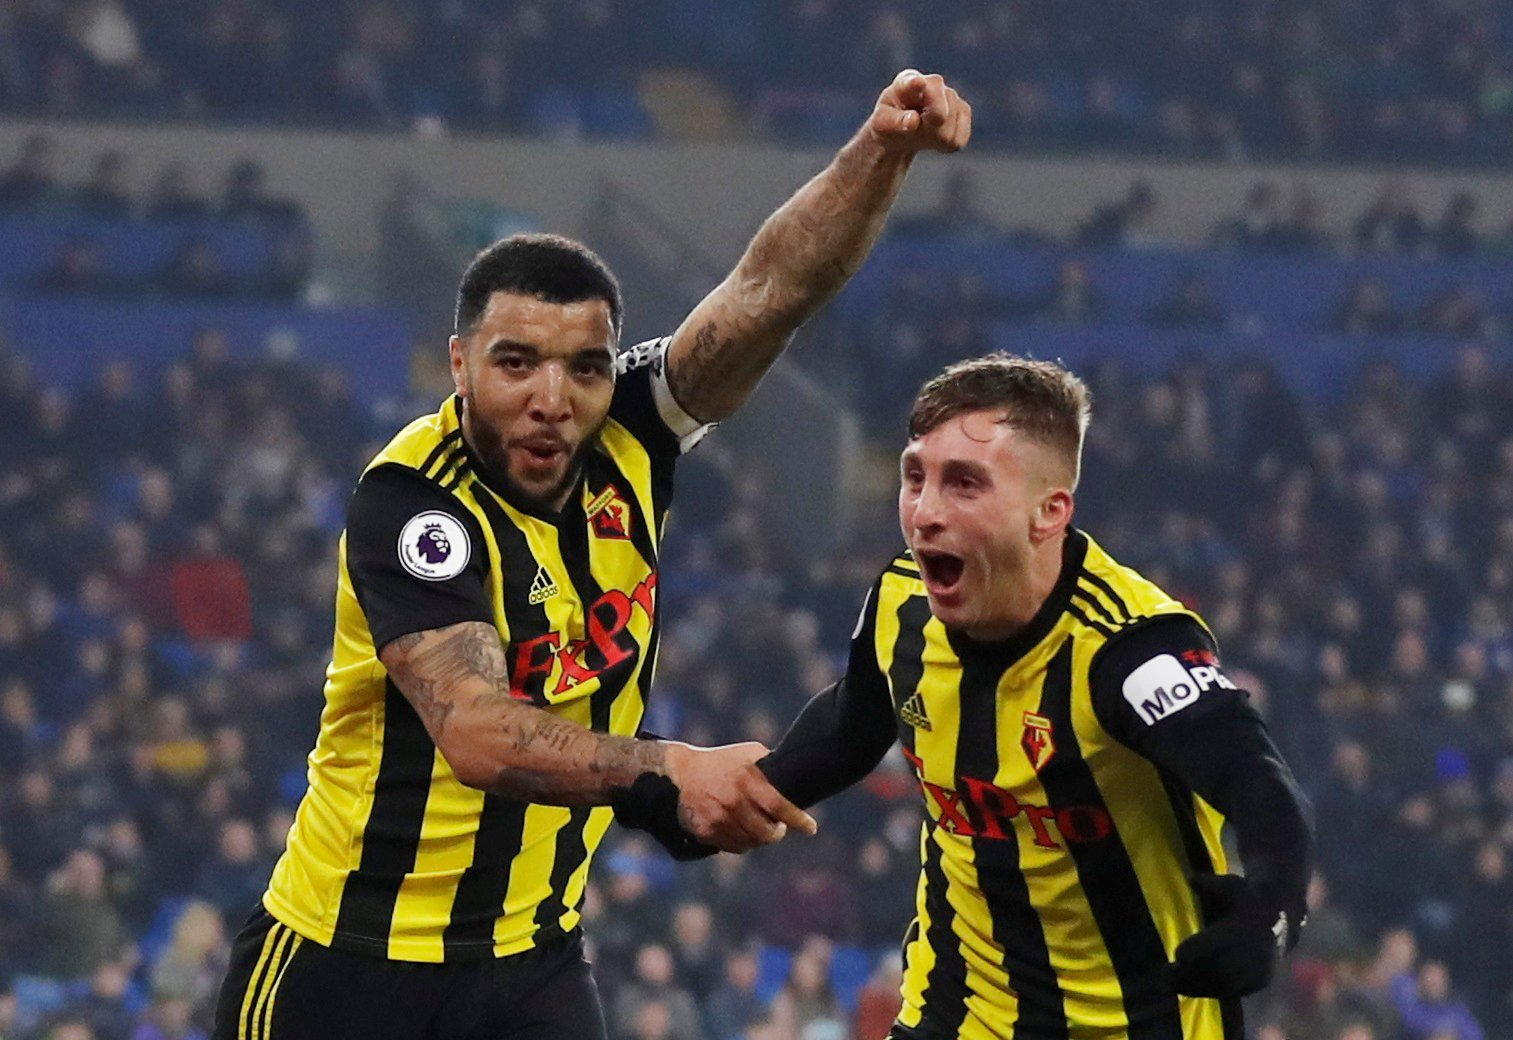 Gerard Deulofeu joins Arsenal legend Thierry Henry in exclusive three-man club after Cardiff hat-trick